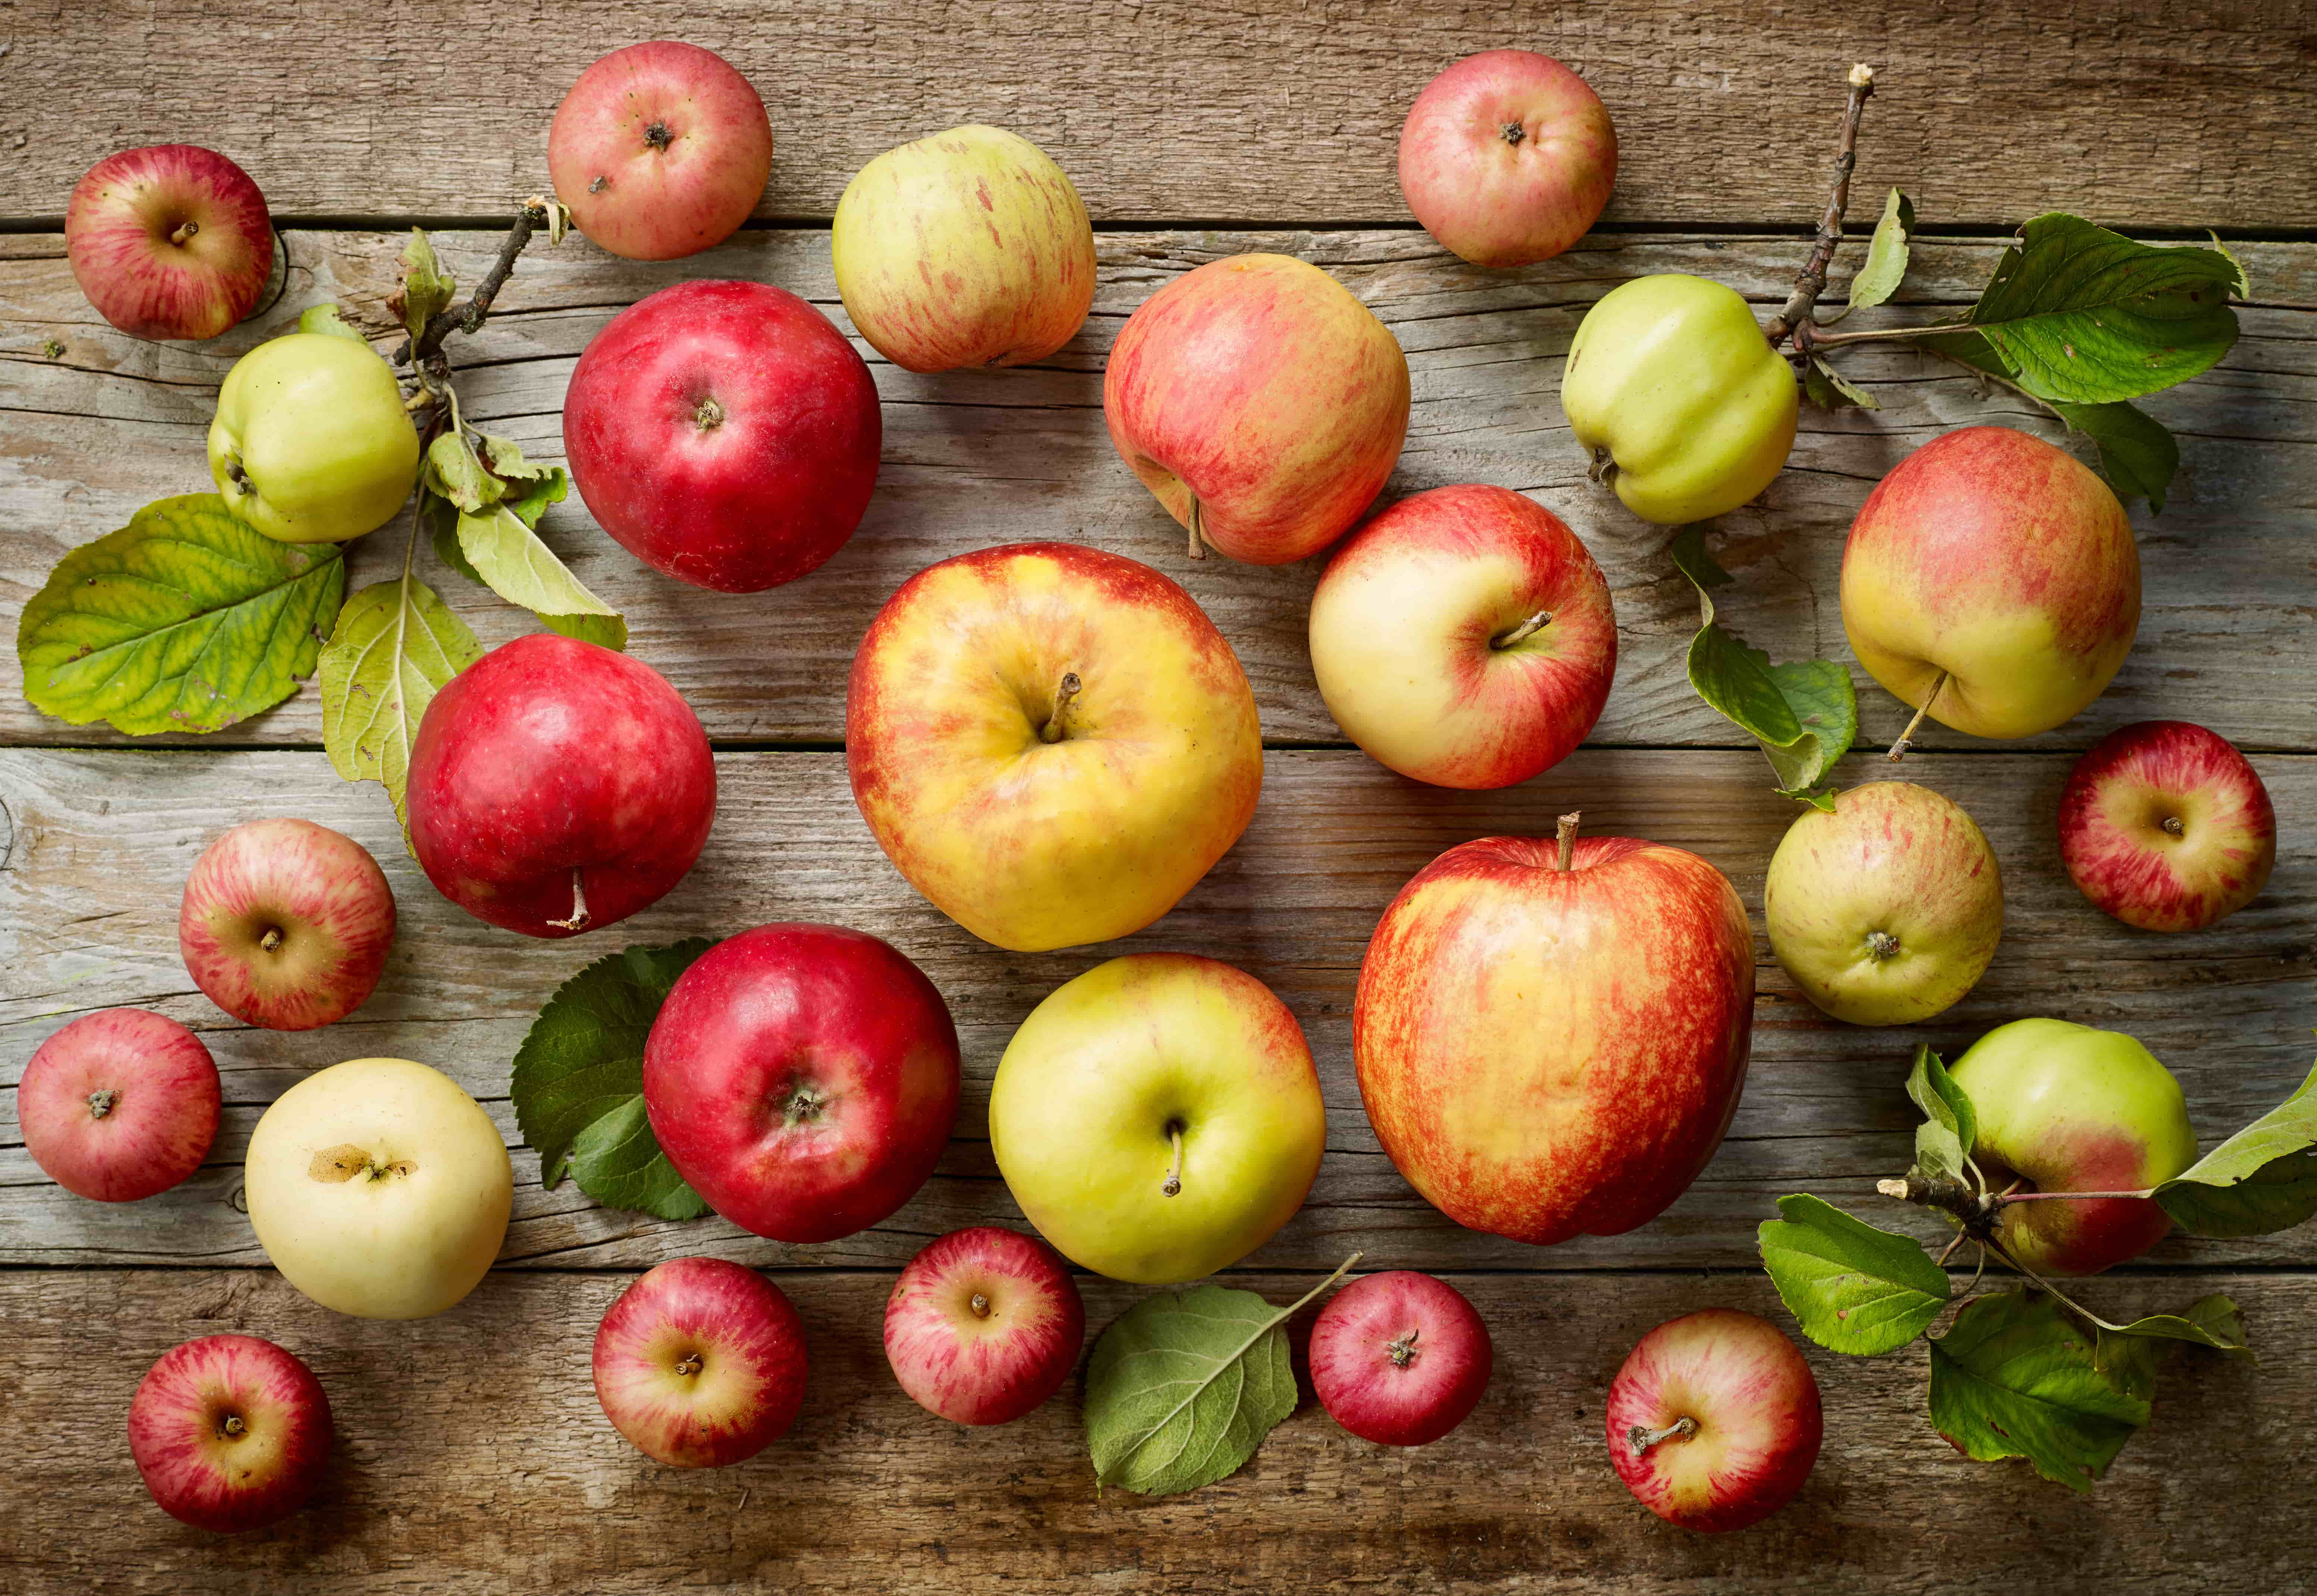 Apples, a source of malic acid